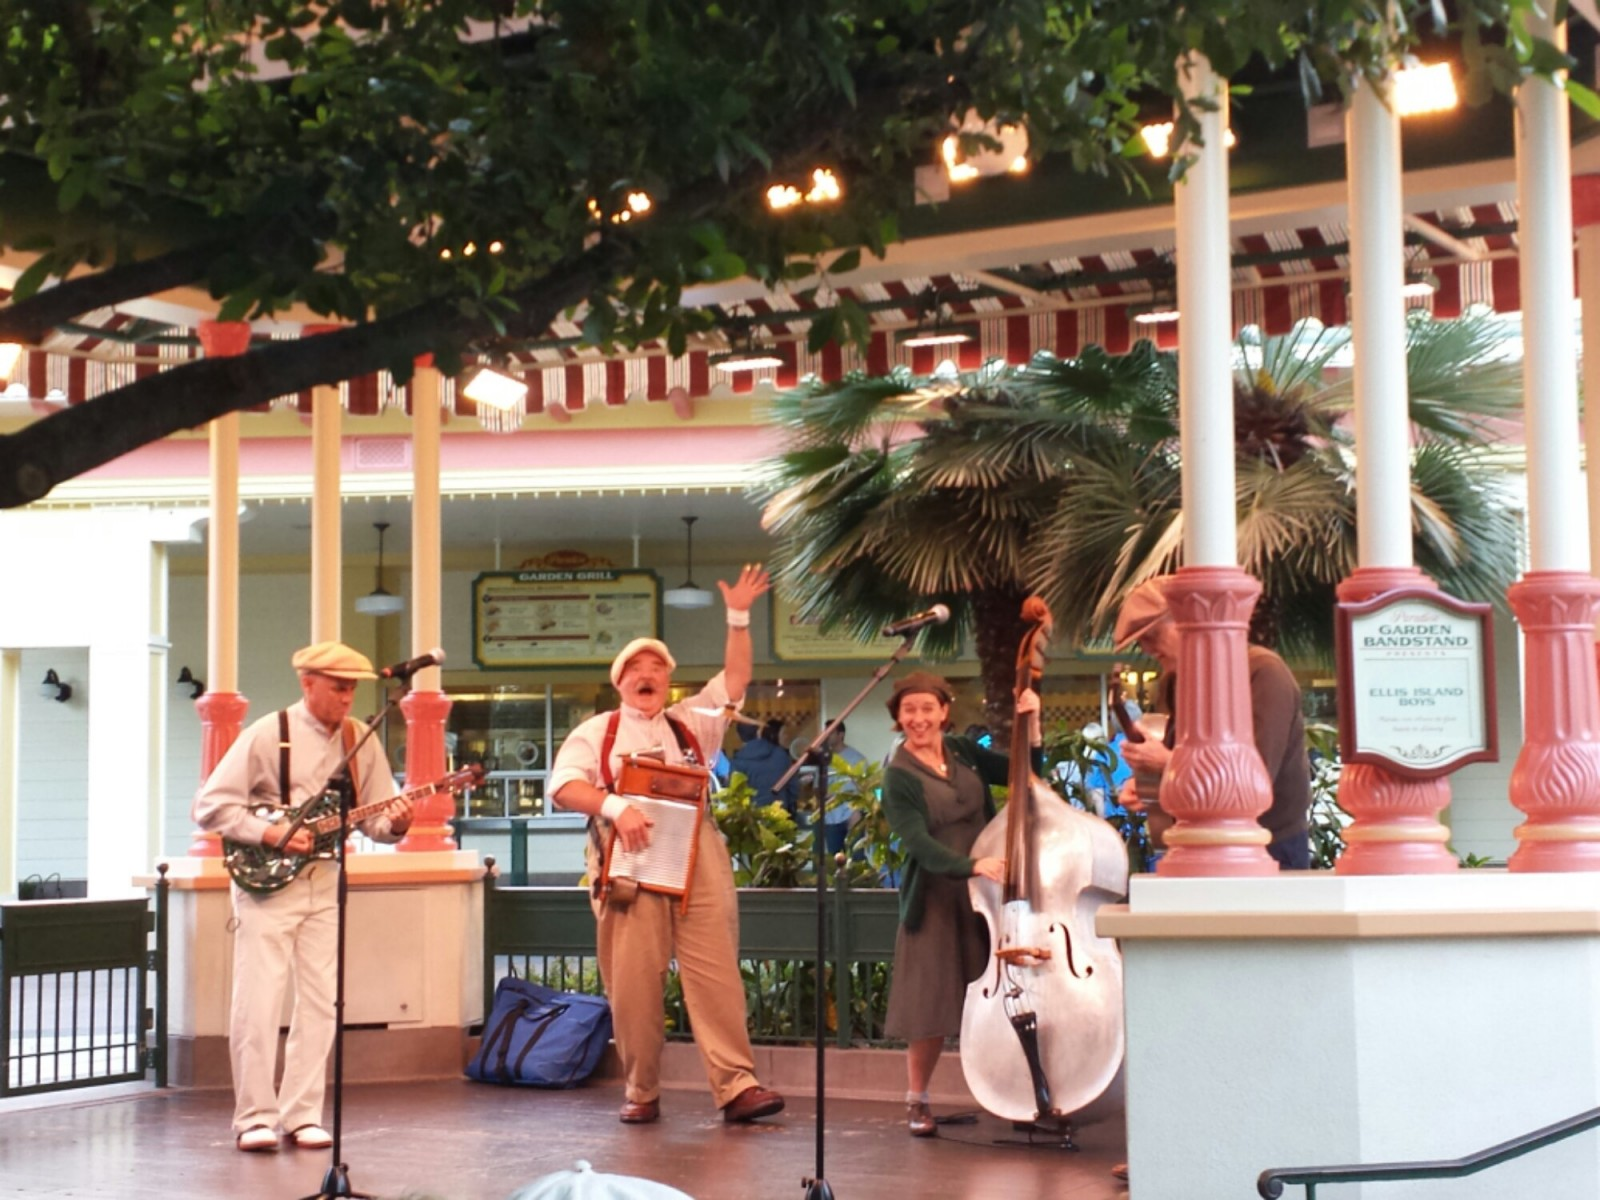 The Ellis Island Boys performing at Paradise Garden Bandstand